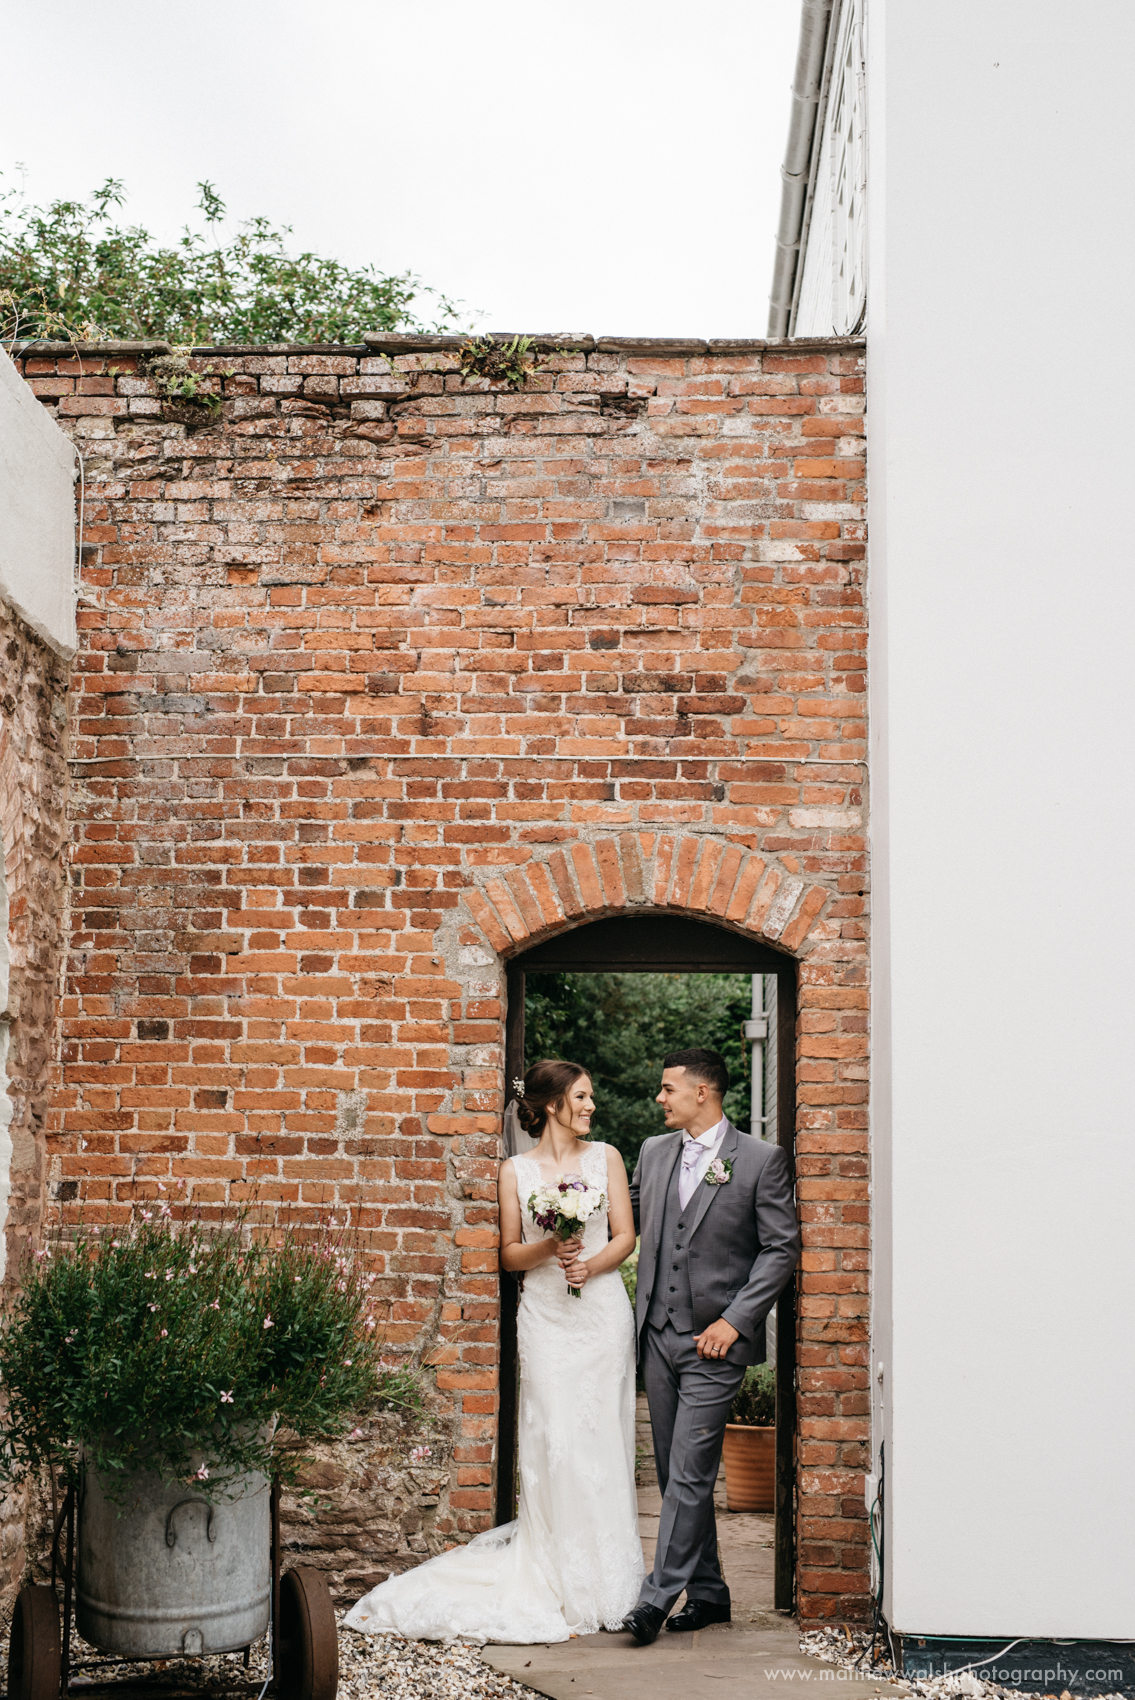 The newlyweds standing in a doorway